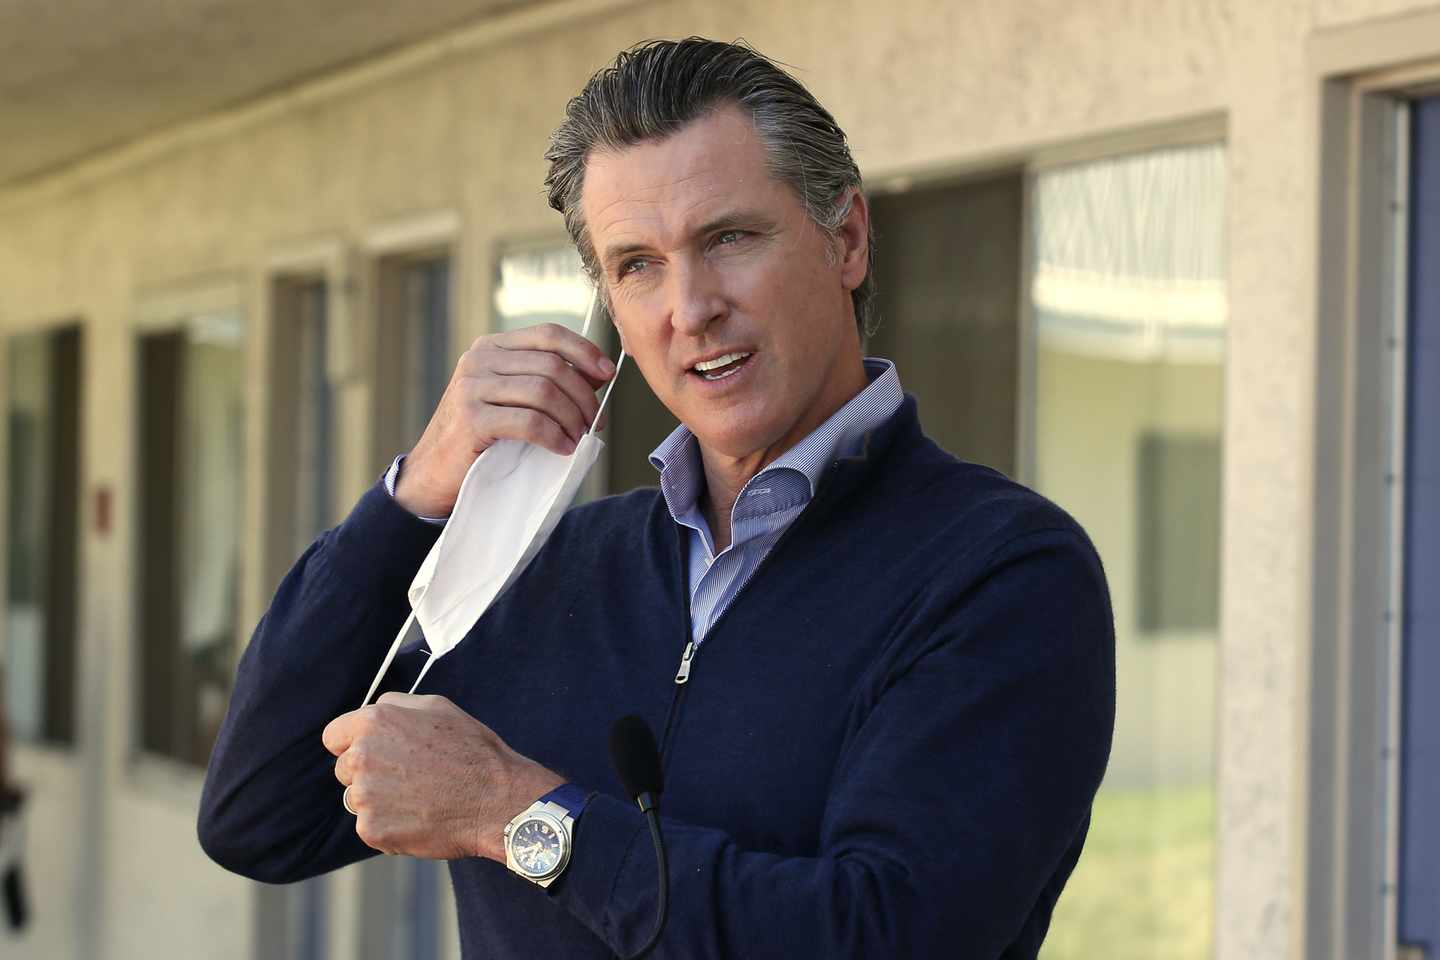 Bitter Taste of Hypocrisy Lingers After Newsom's Meal